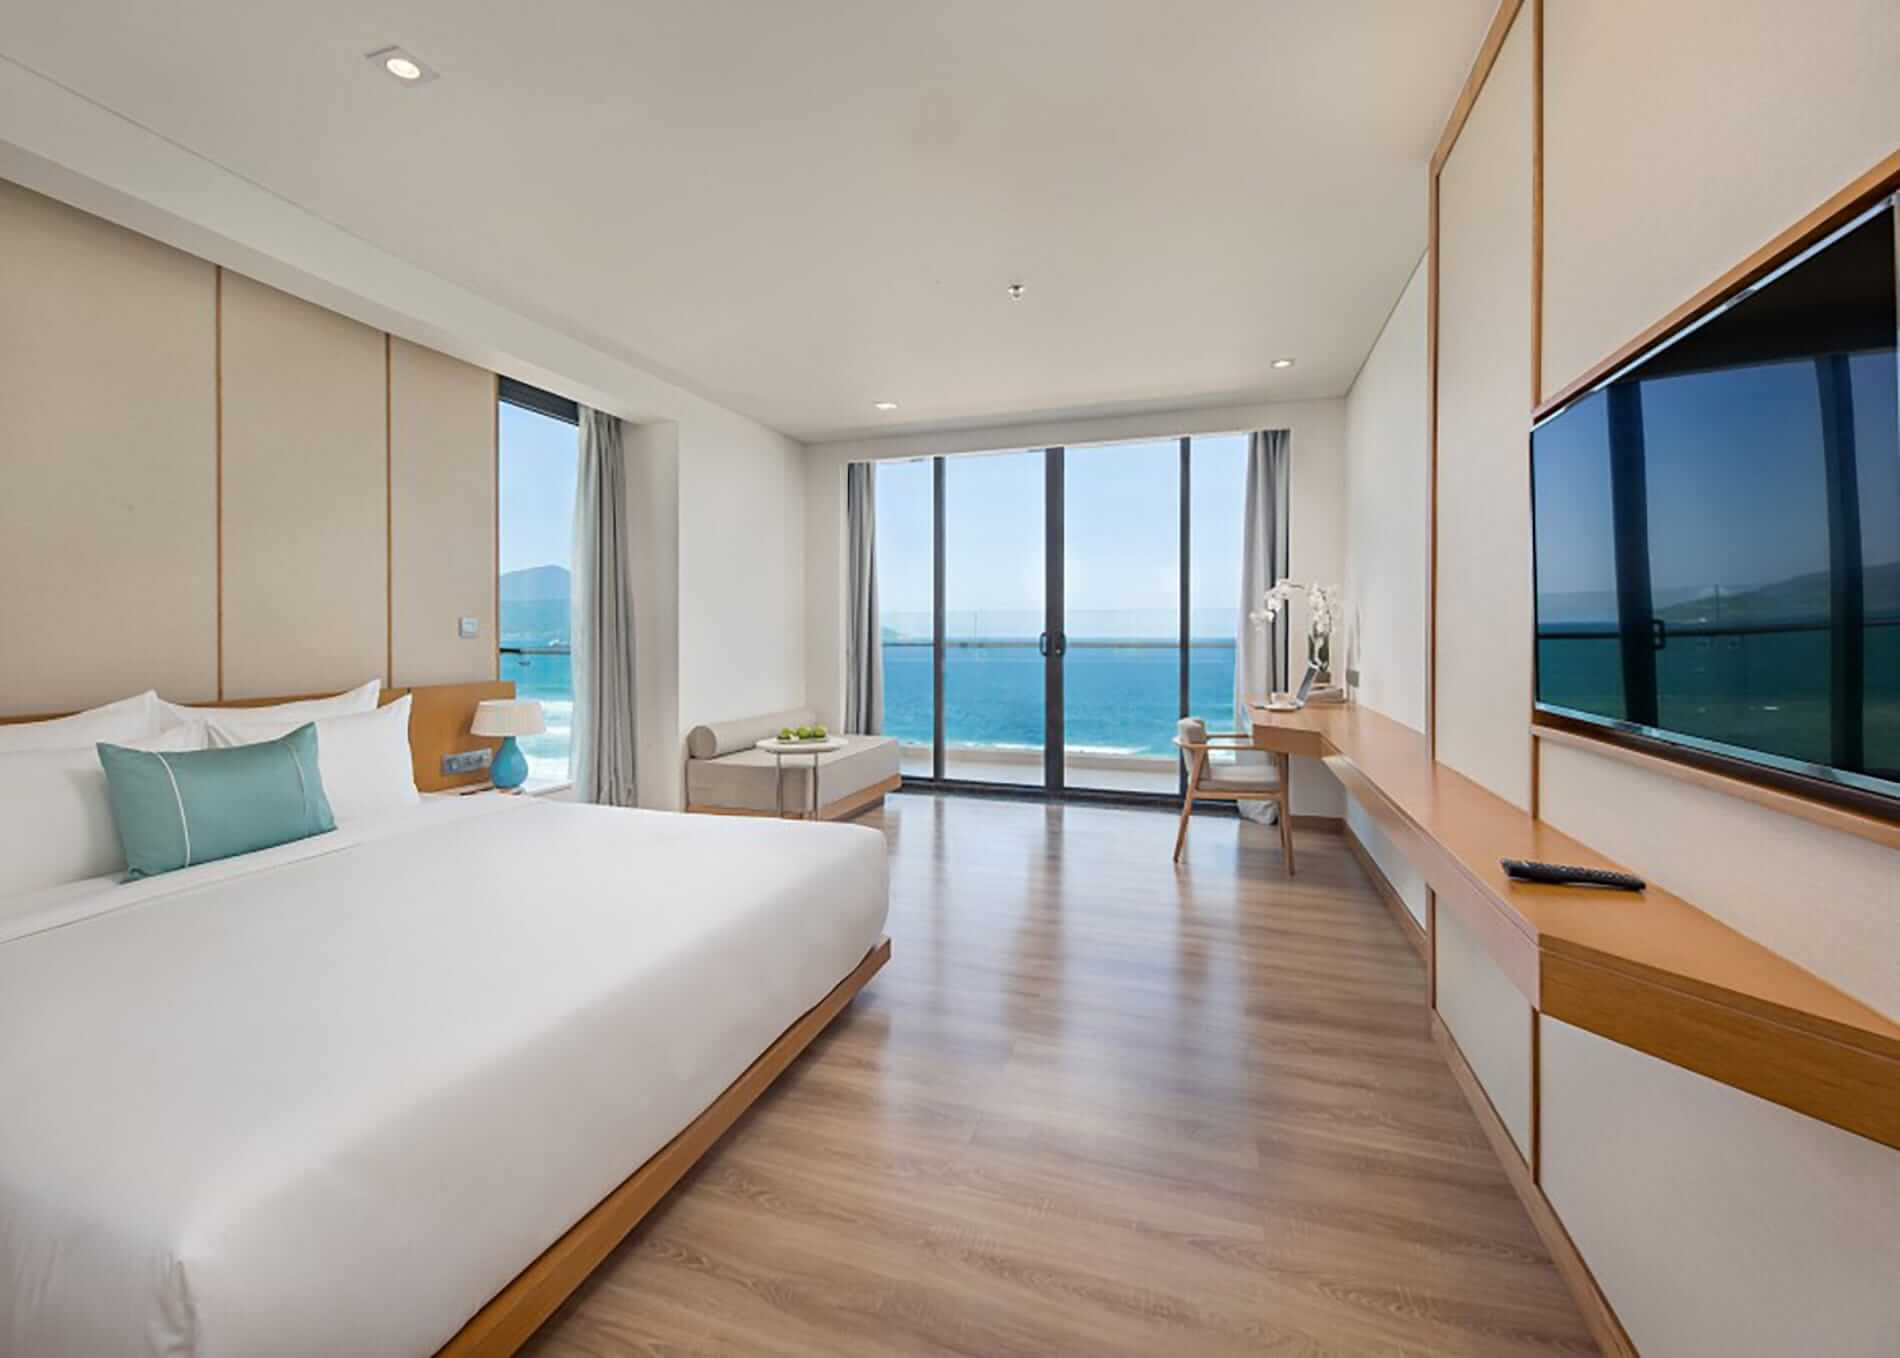 TMS Hotel grand sea view suit